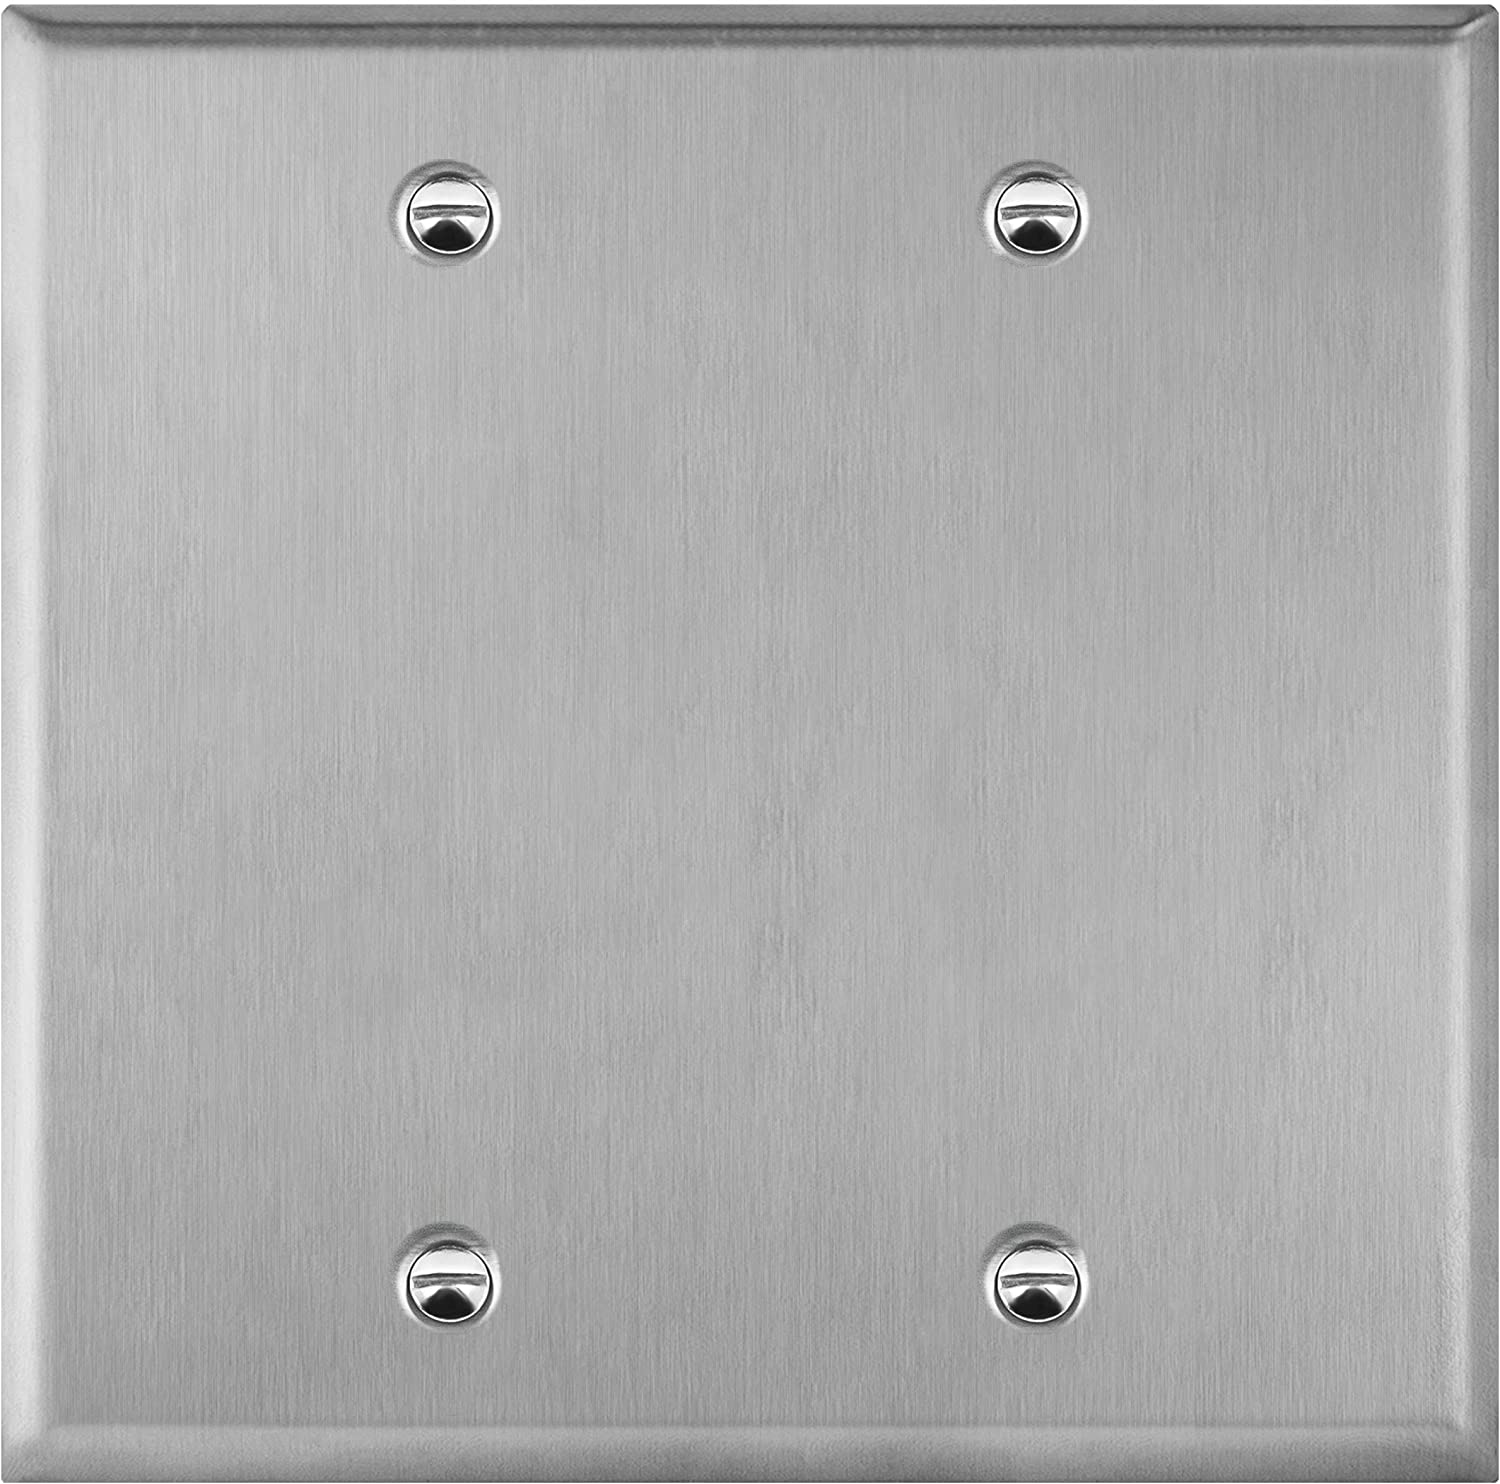 "ENERLITES Blank Device Stainless Steel Wall Plate, Metal Corrosive Resistant Cover for Unused Outlets Light Switches Holes, Size 2-Gang 4.50"" x 4.57"", 7702, 430 Stainless Steel, UL Listed, Silver"